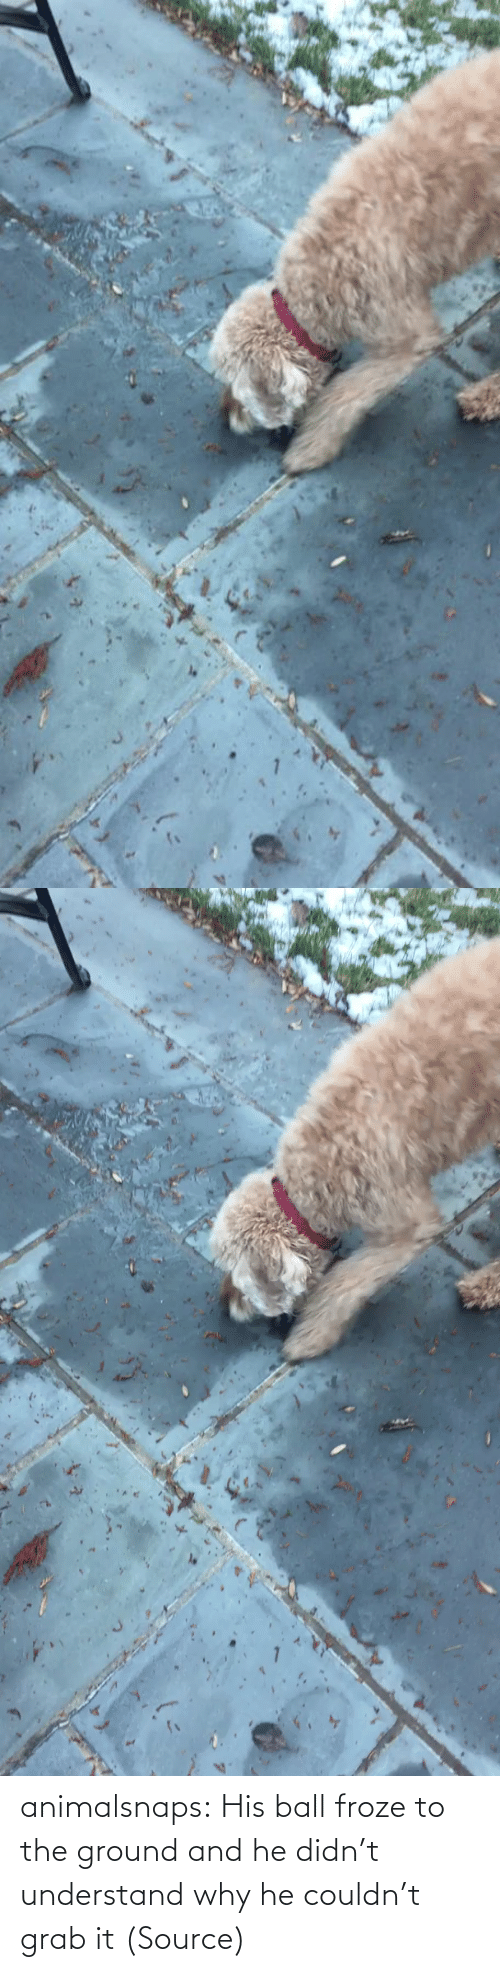 grab: animalsnaps:  His ball froze to the ground and he didn't understand why he couldn't grab it (Source)